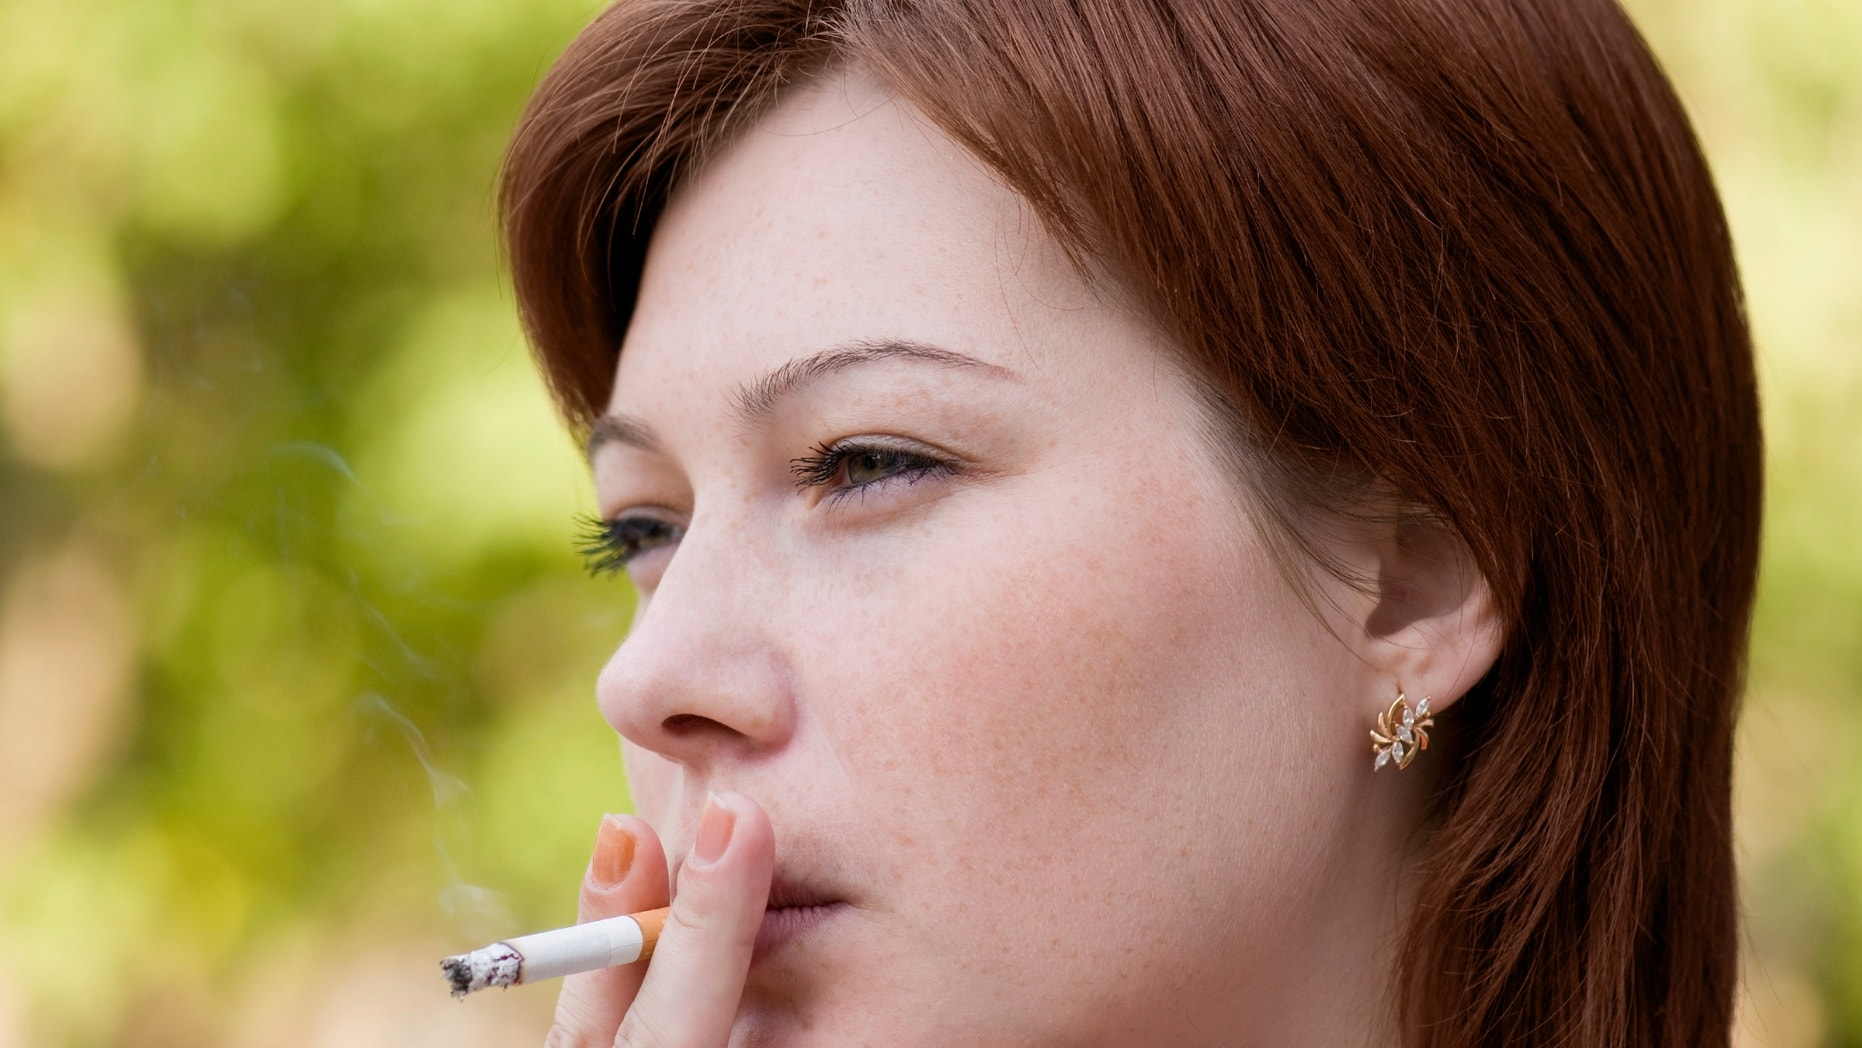 The young woman who is smoking a cigarette and carrying away a smoke in air